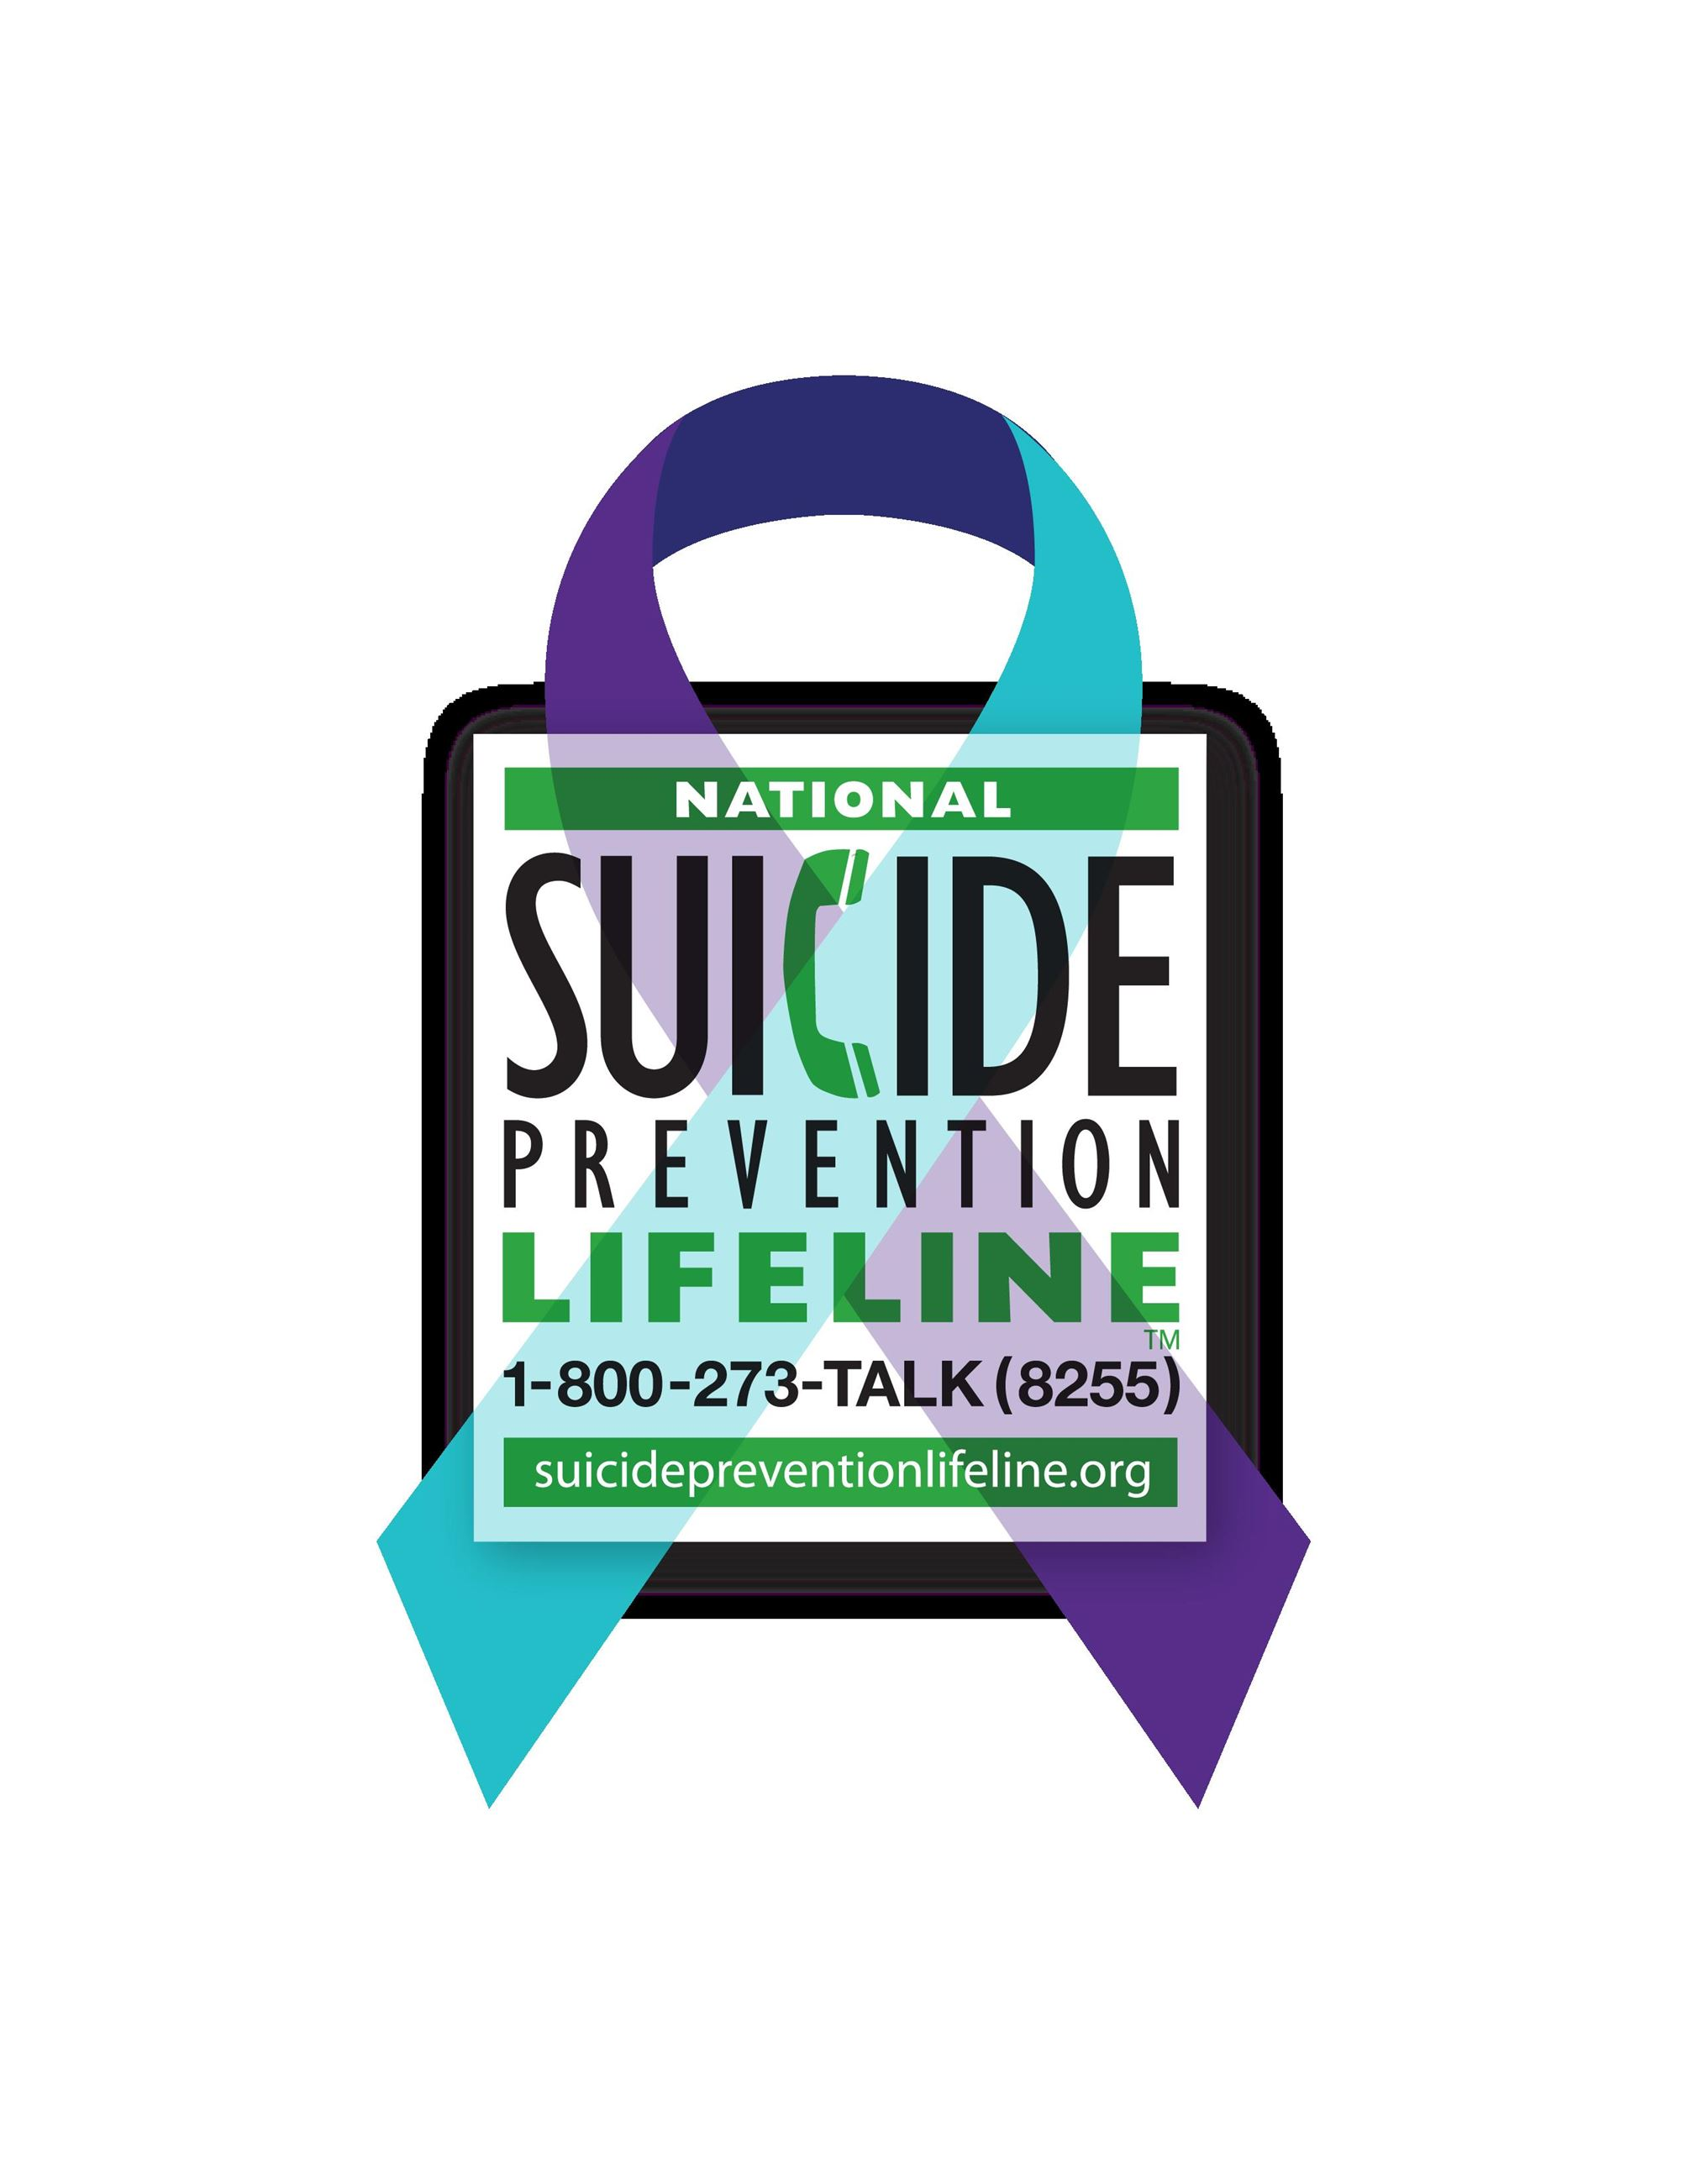 suicide prevention ribbon on top of national suicide prevention lifeline logo